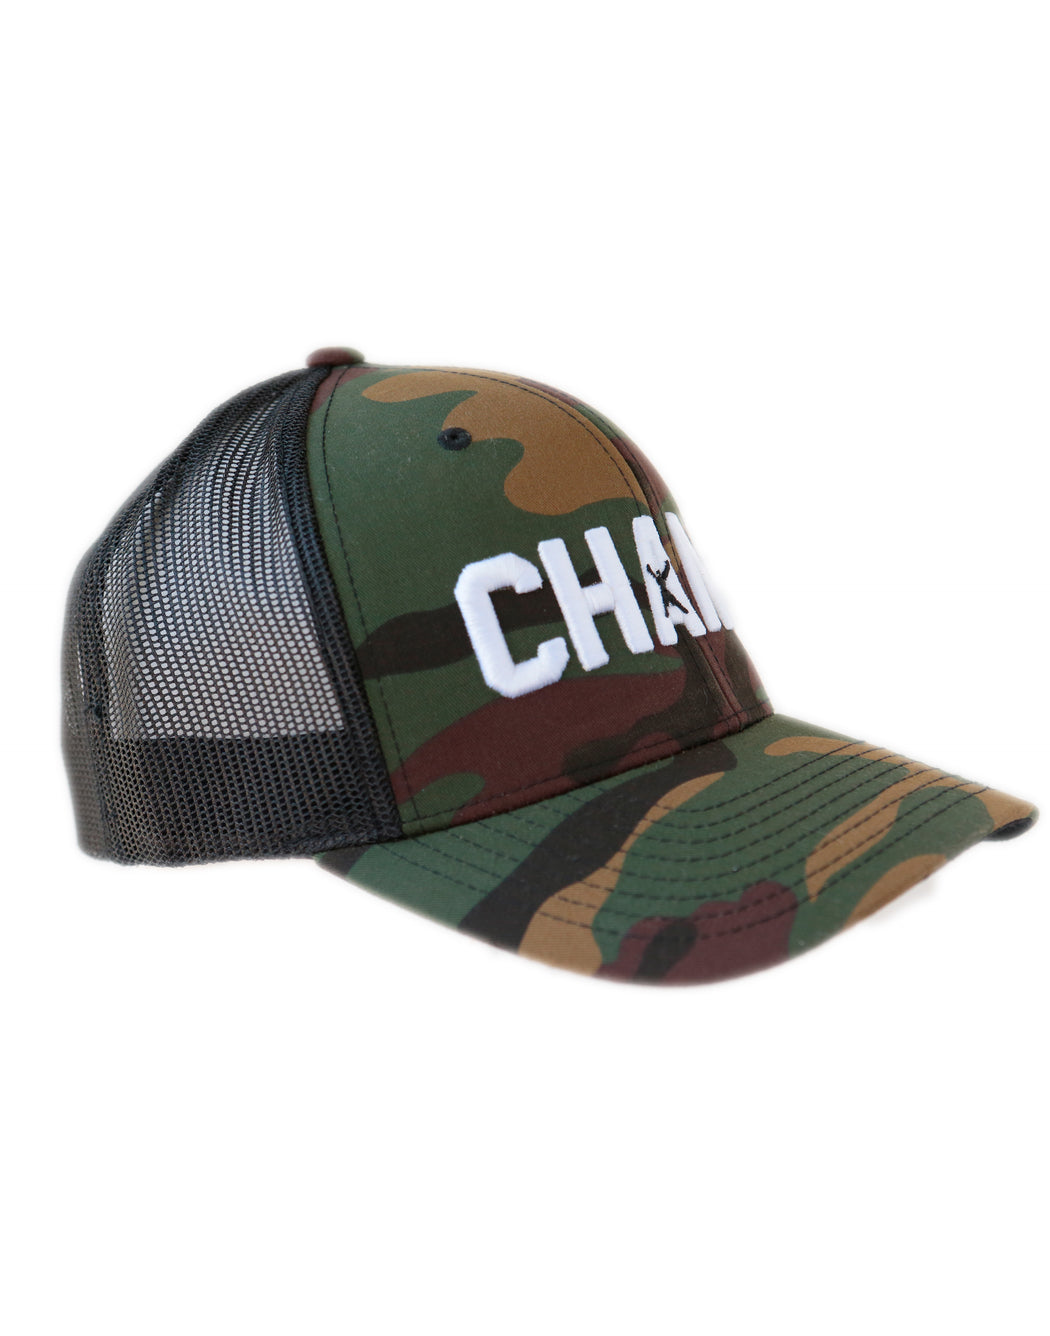 Boxer Men's Adjustable Snapback Champ Camo Baseball Cap